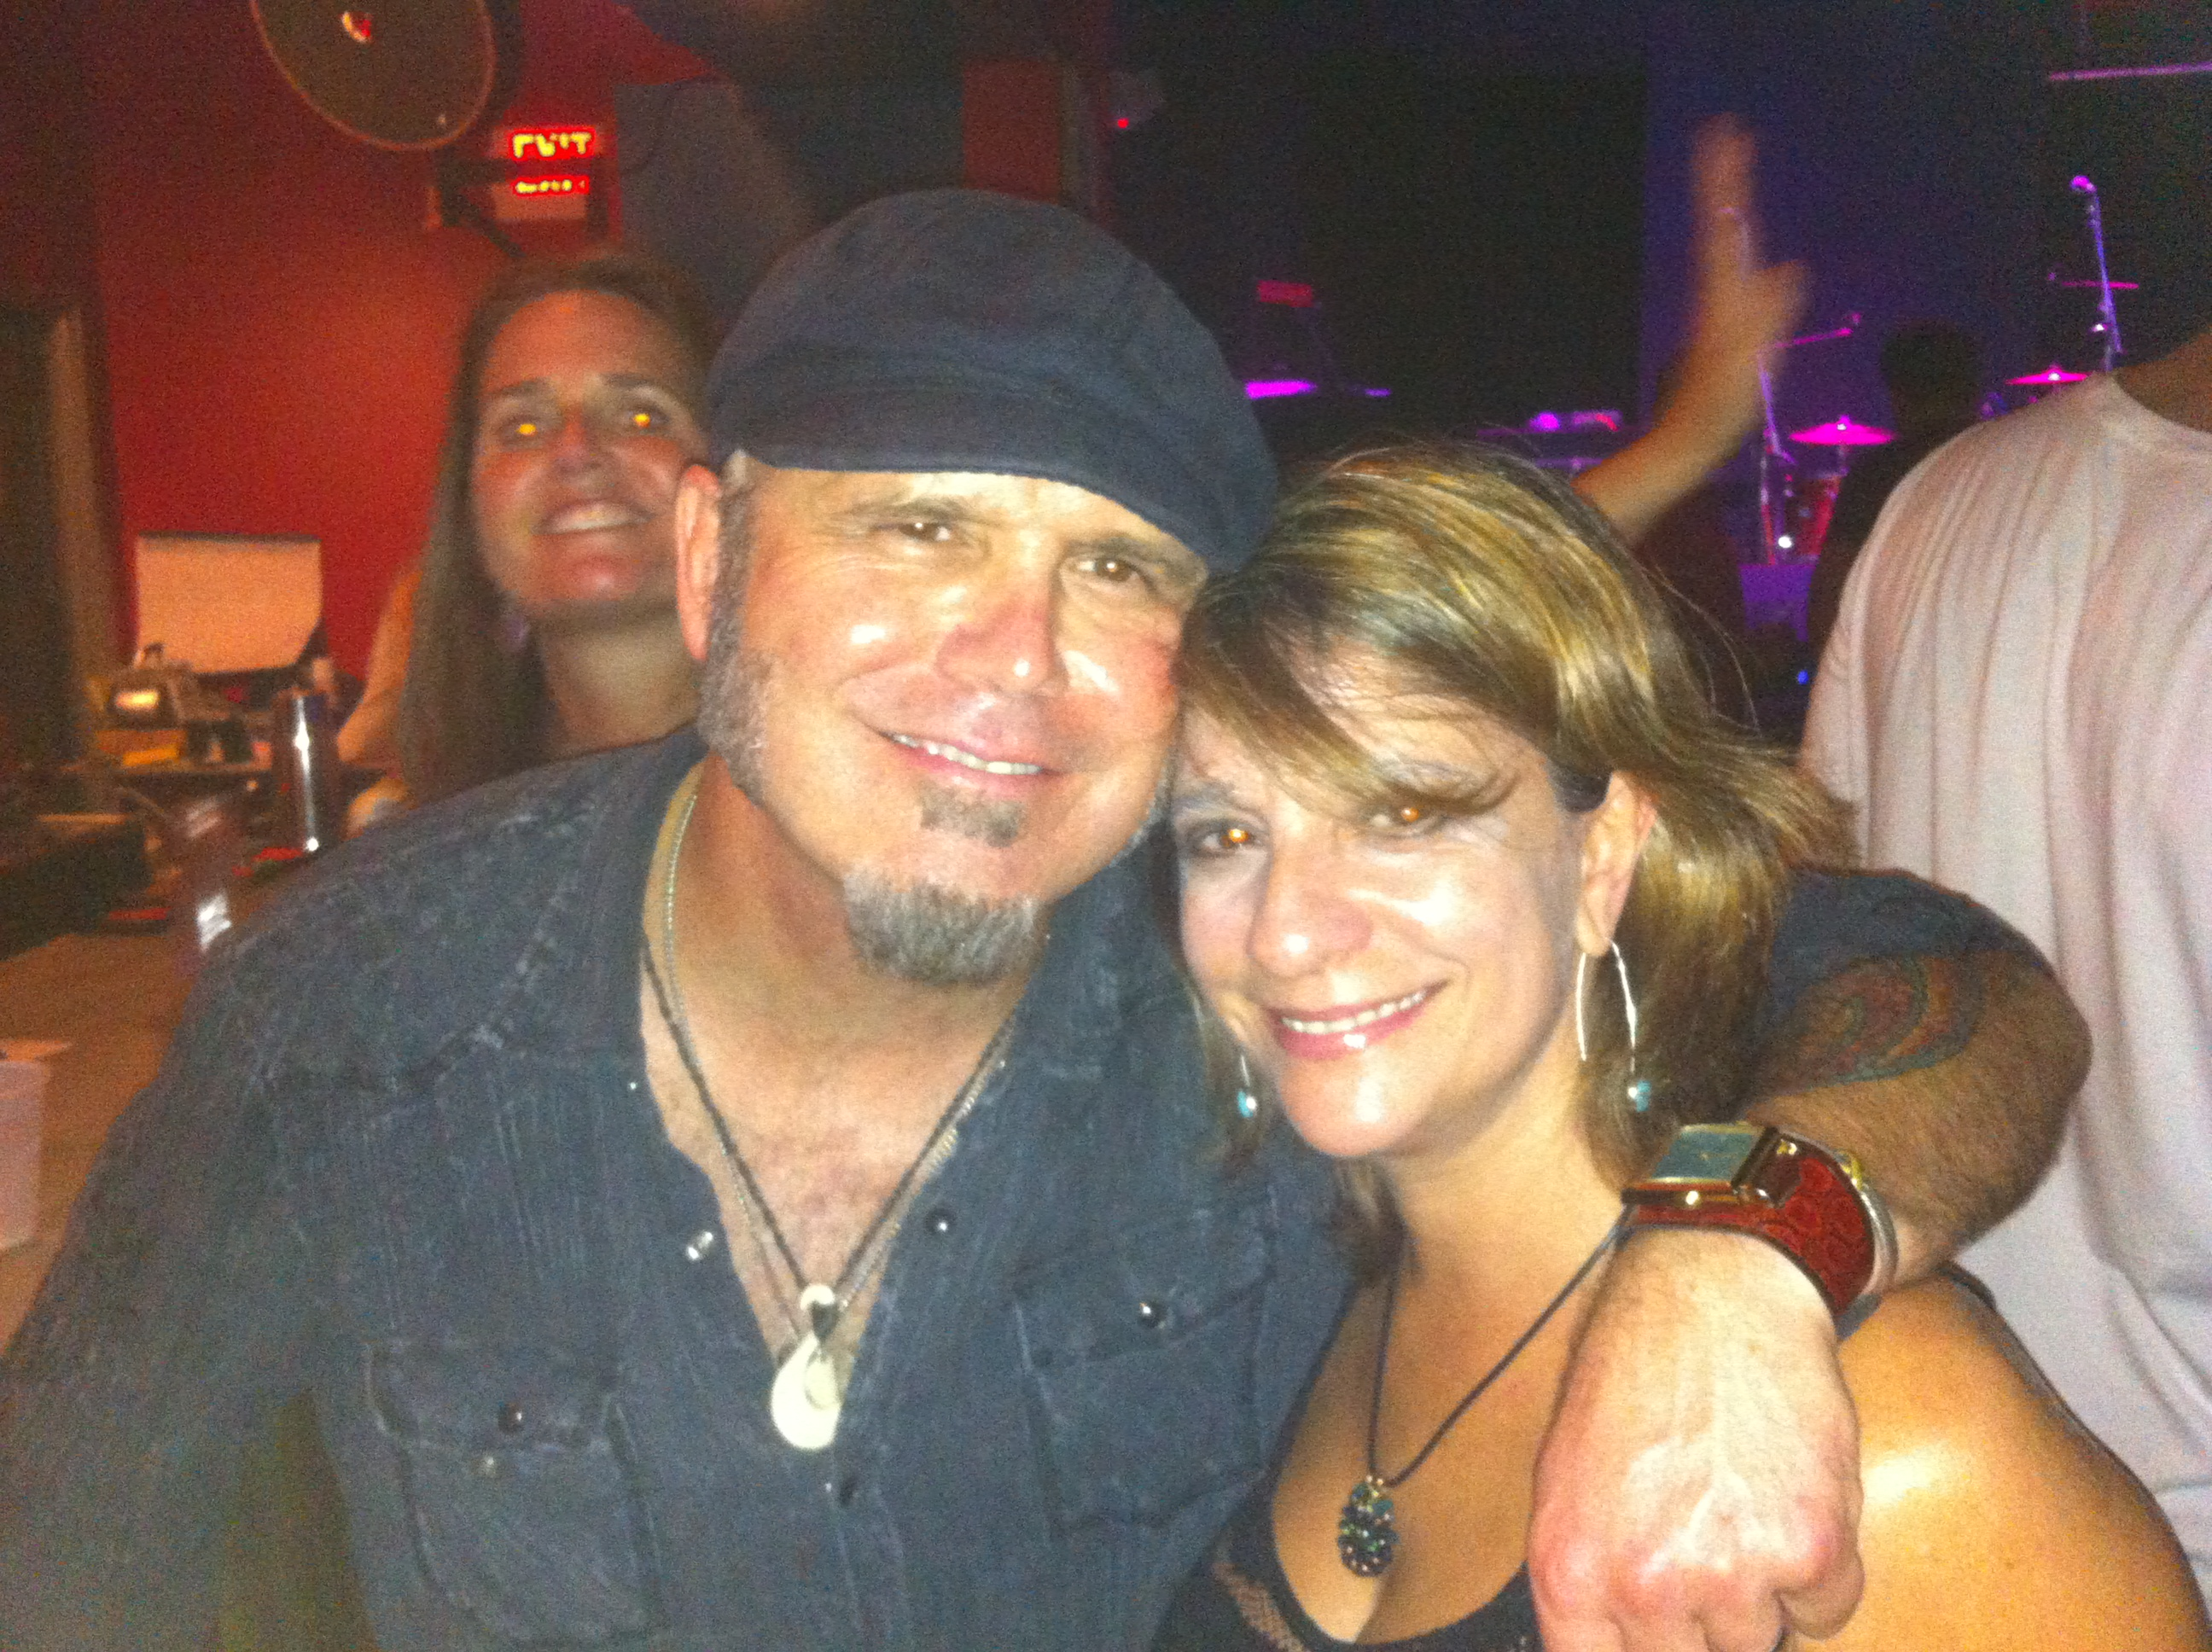 Vocalist Paula Gallo with bassist Judd Fuller of the Rodney Atkins band